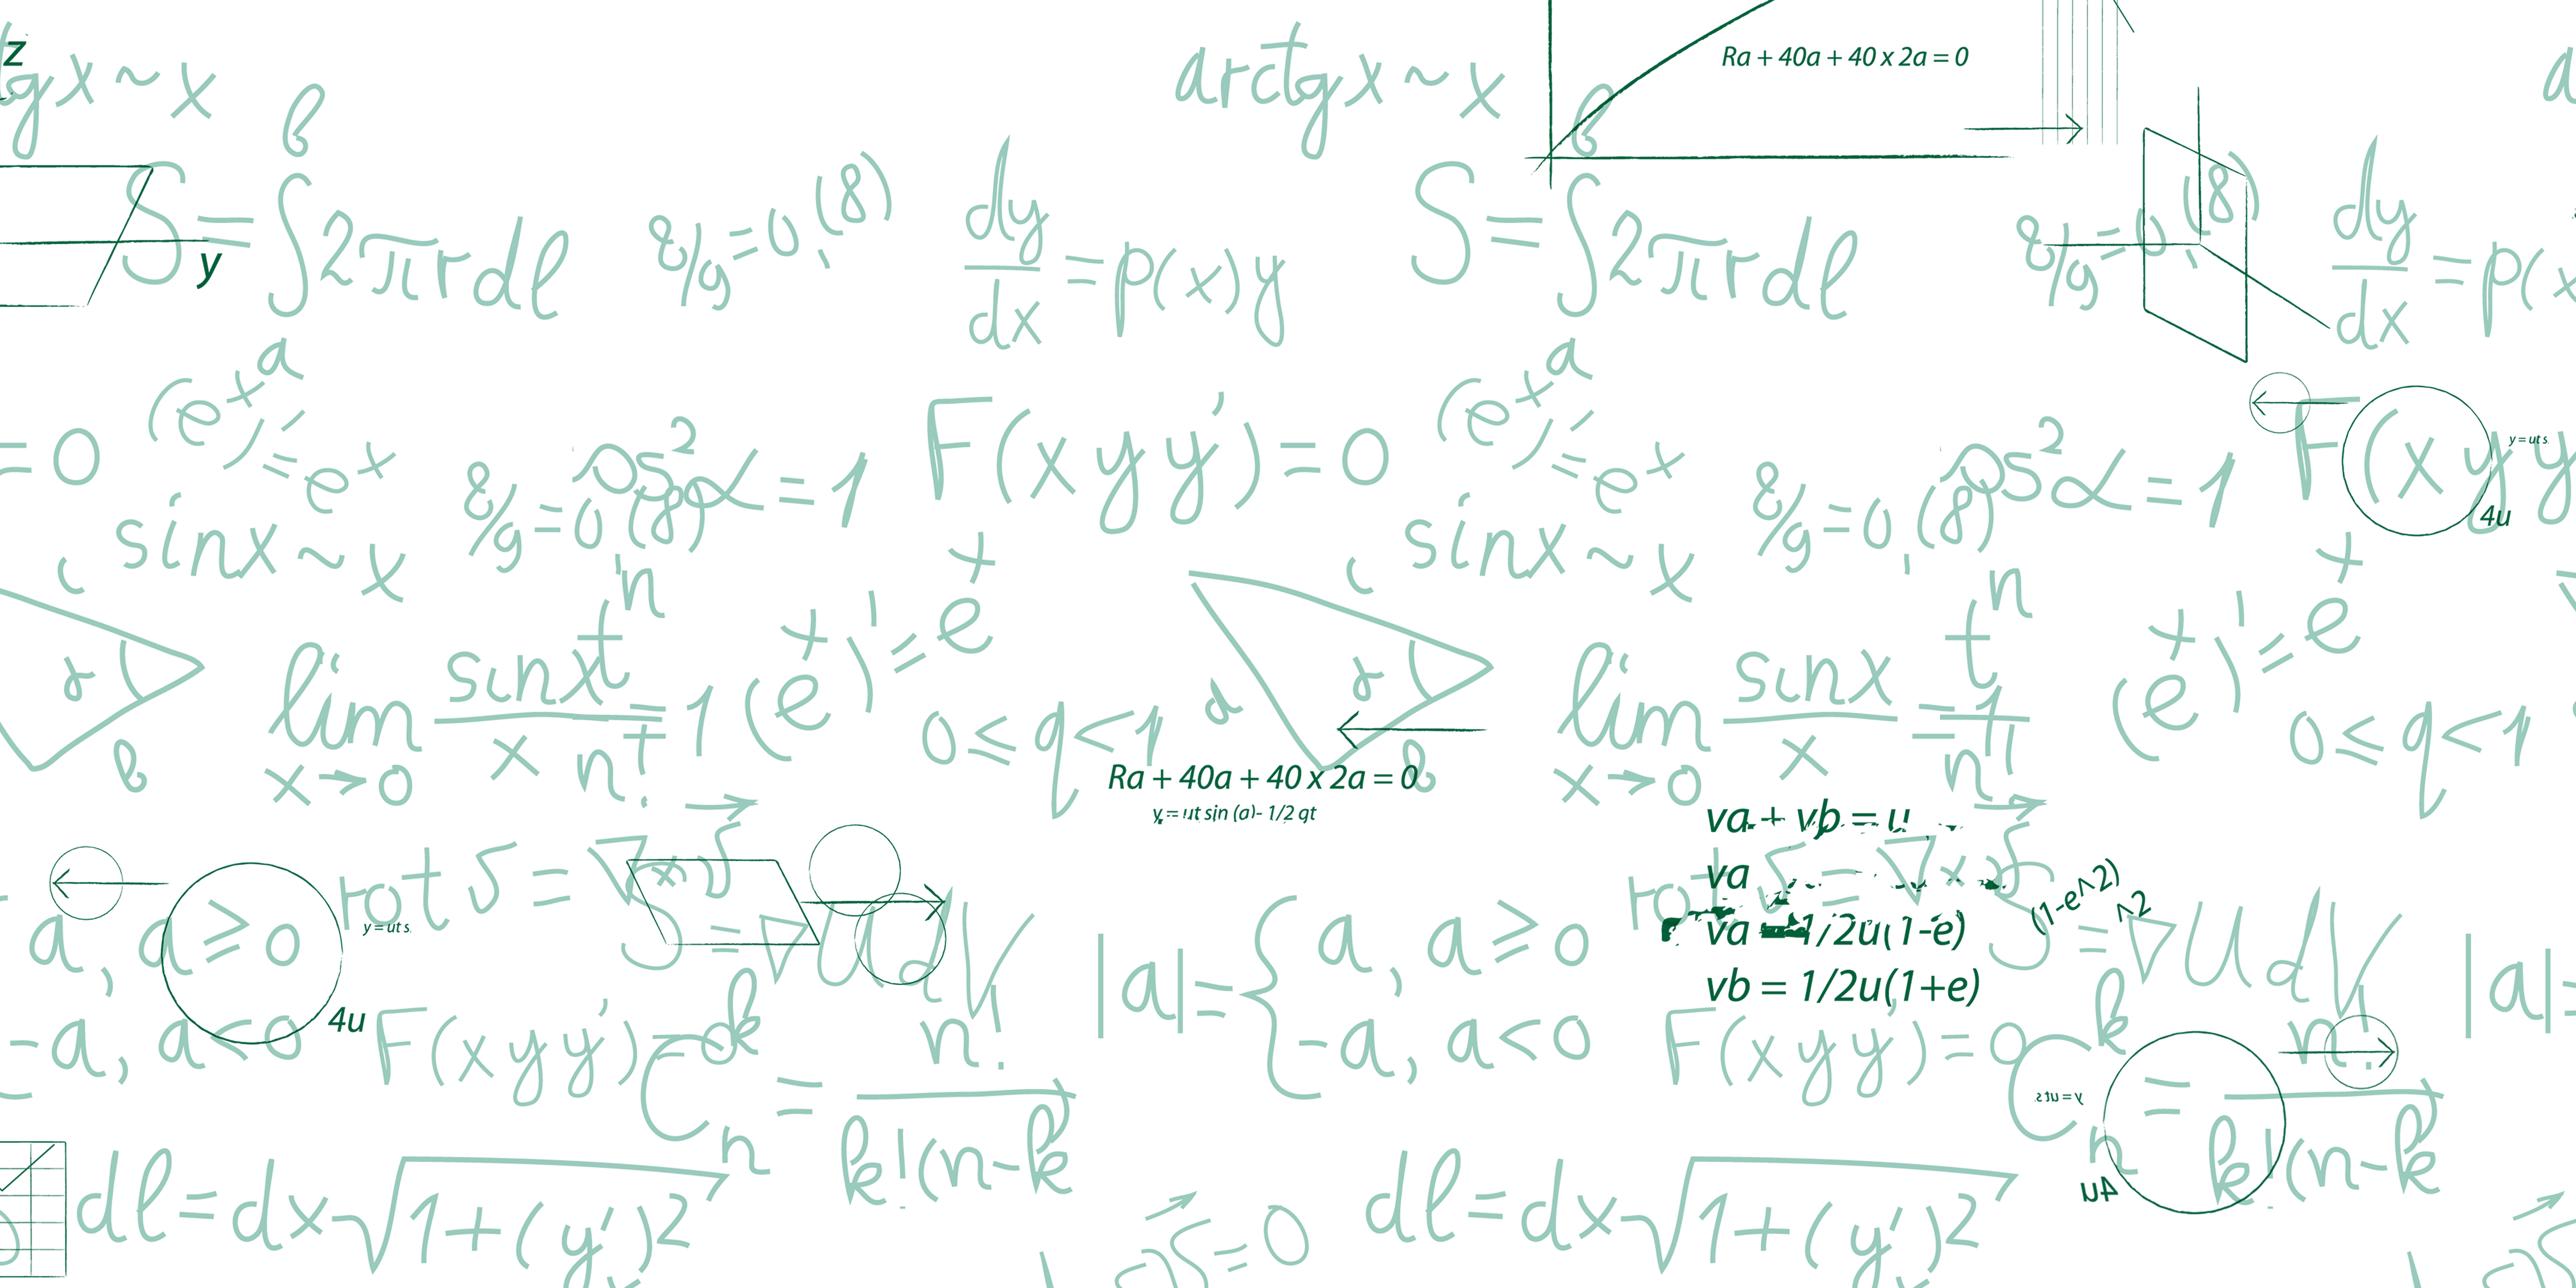 Math background png. White pattern the of